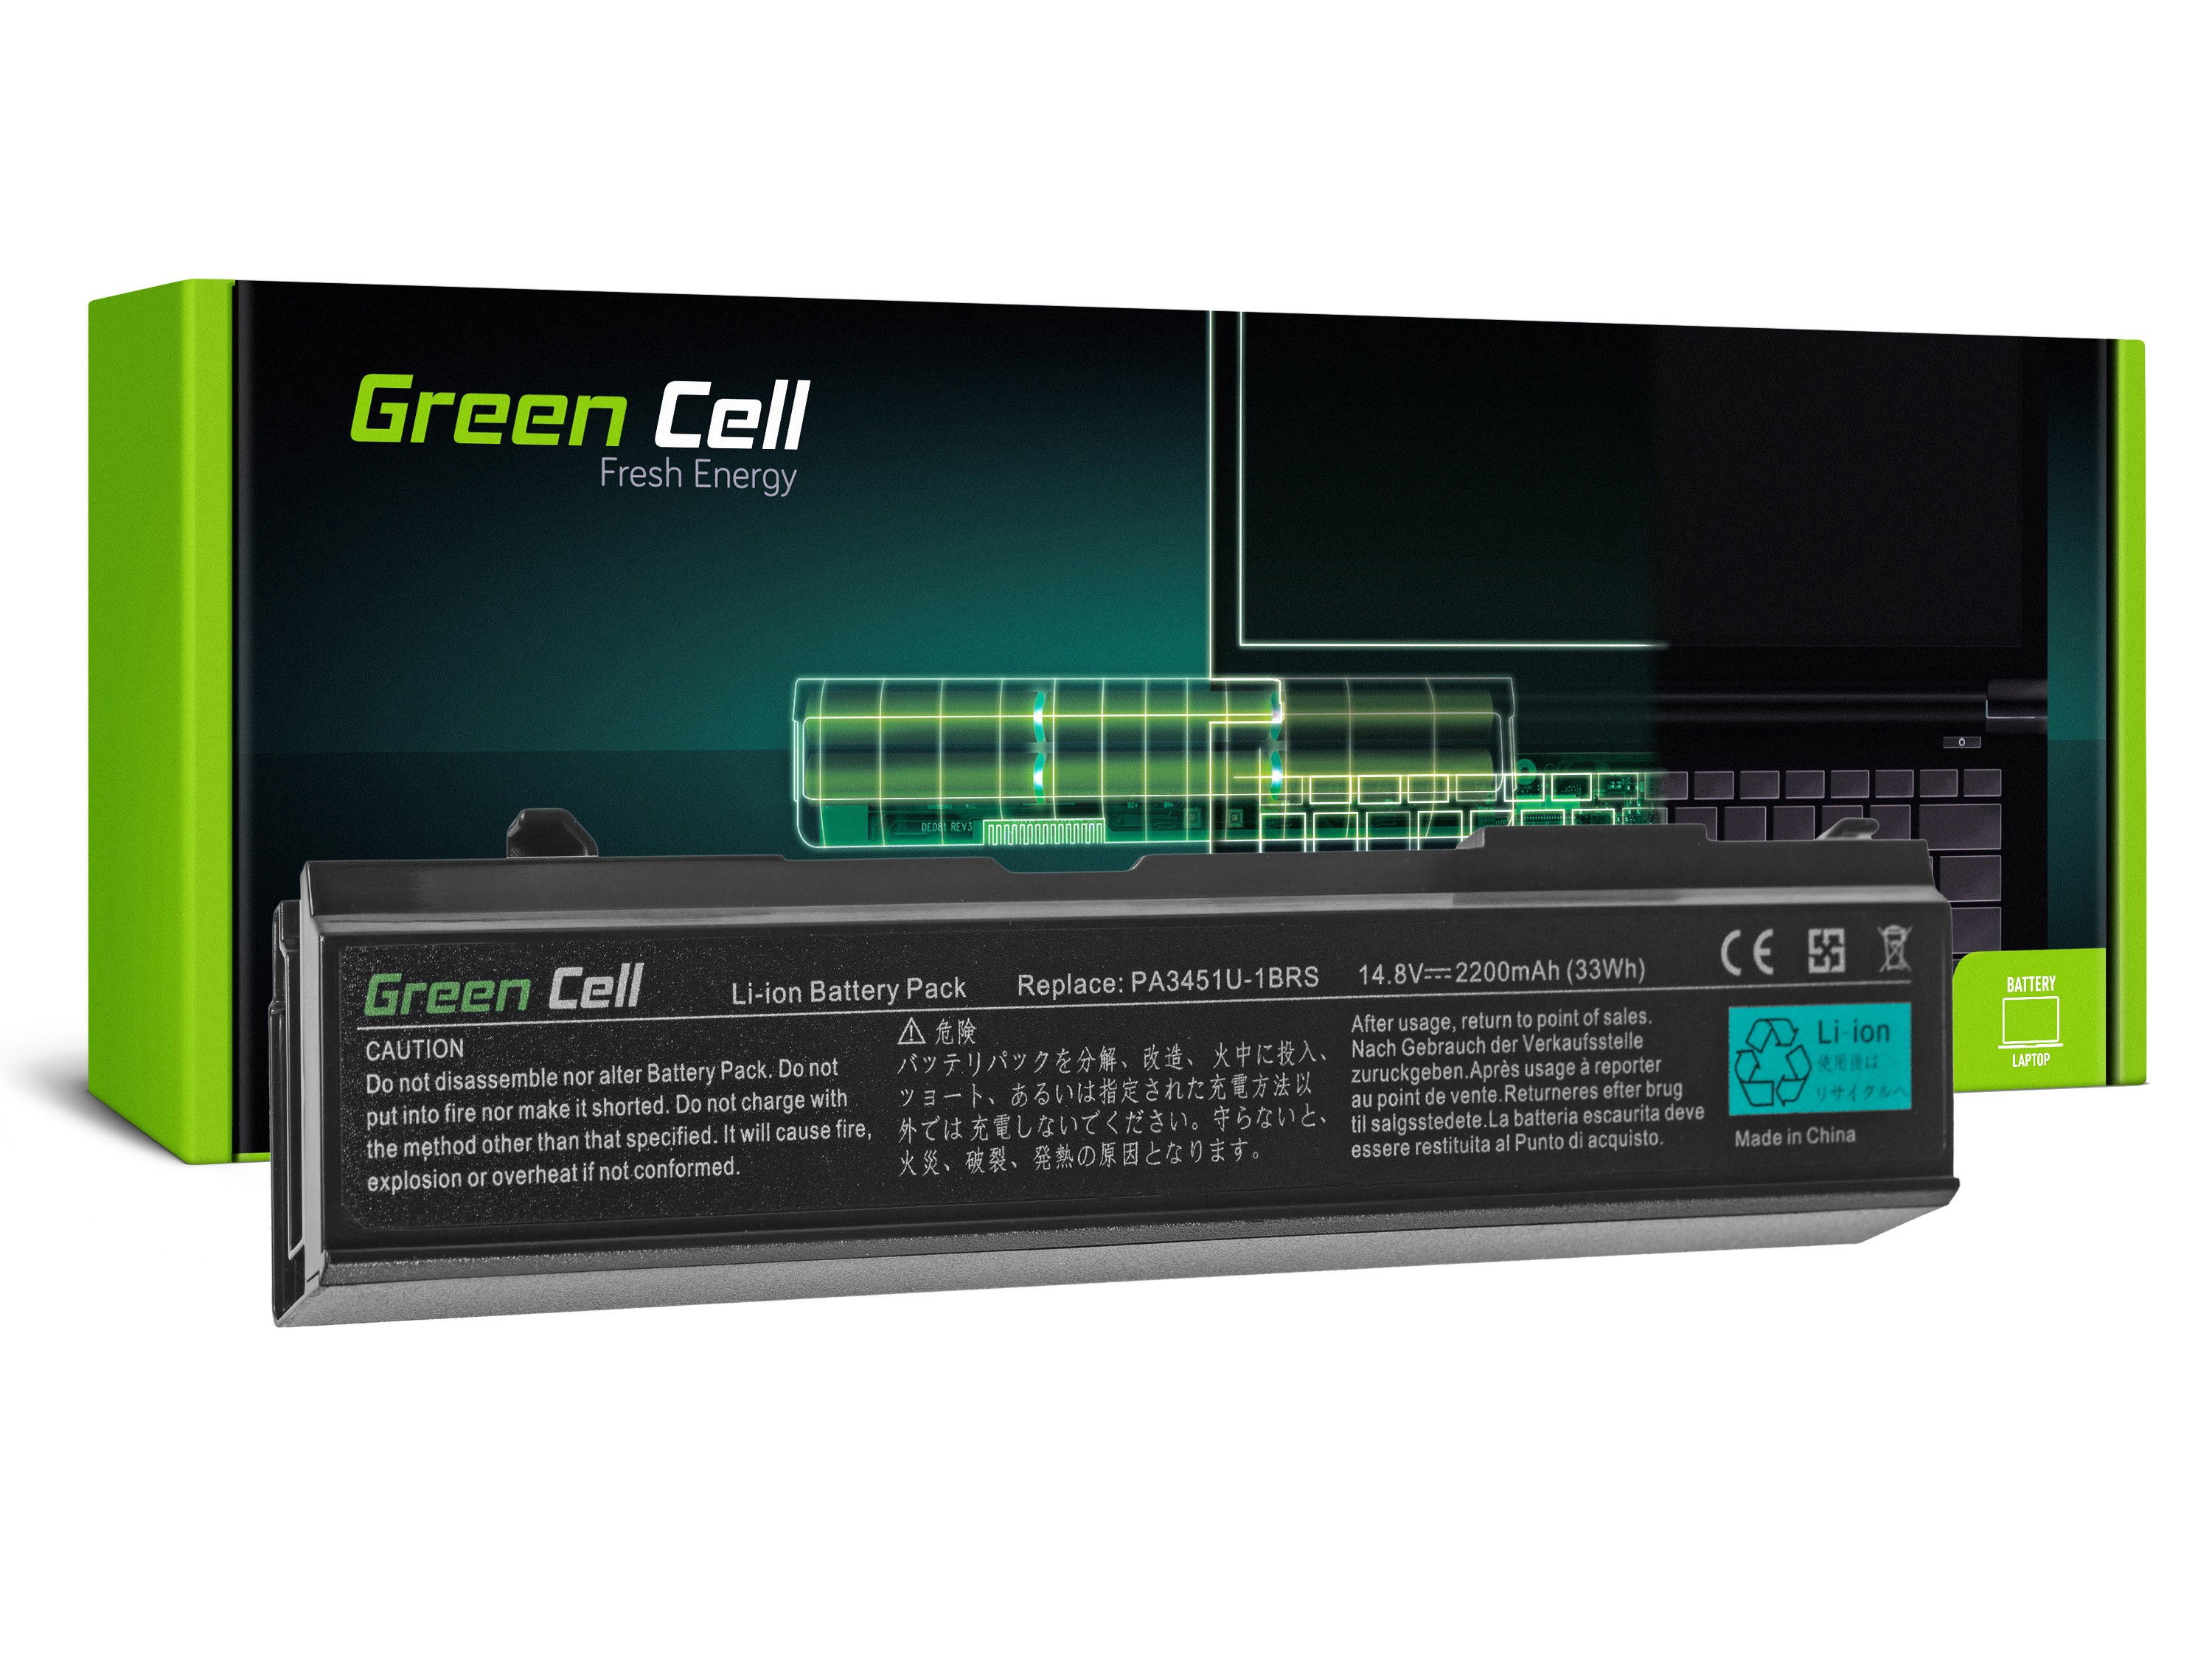 Green Cell TS48 Baterie Toshiba Satellite A100 A110 A135 M70, Toshiba Satellite Pro A110 M40 M50 M70 2200mAh Li-ion - neoriginální